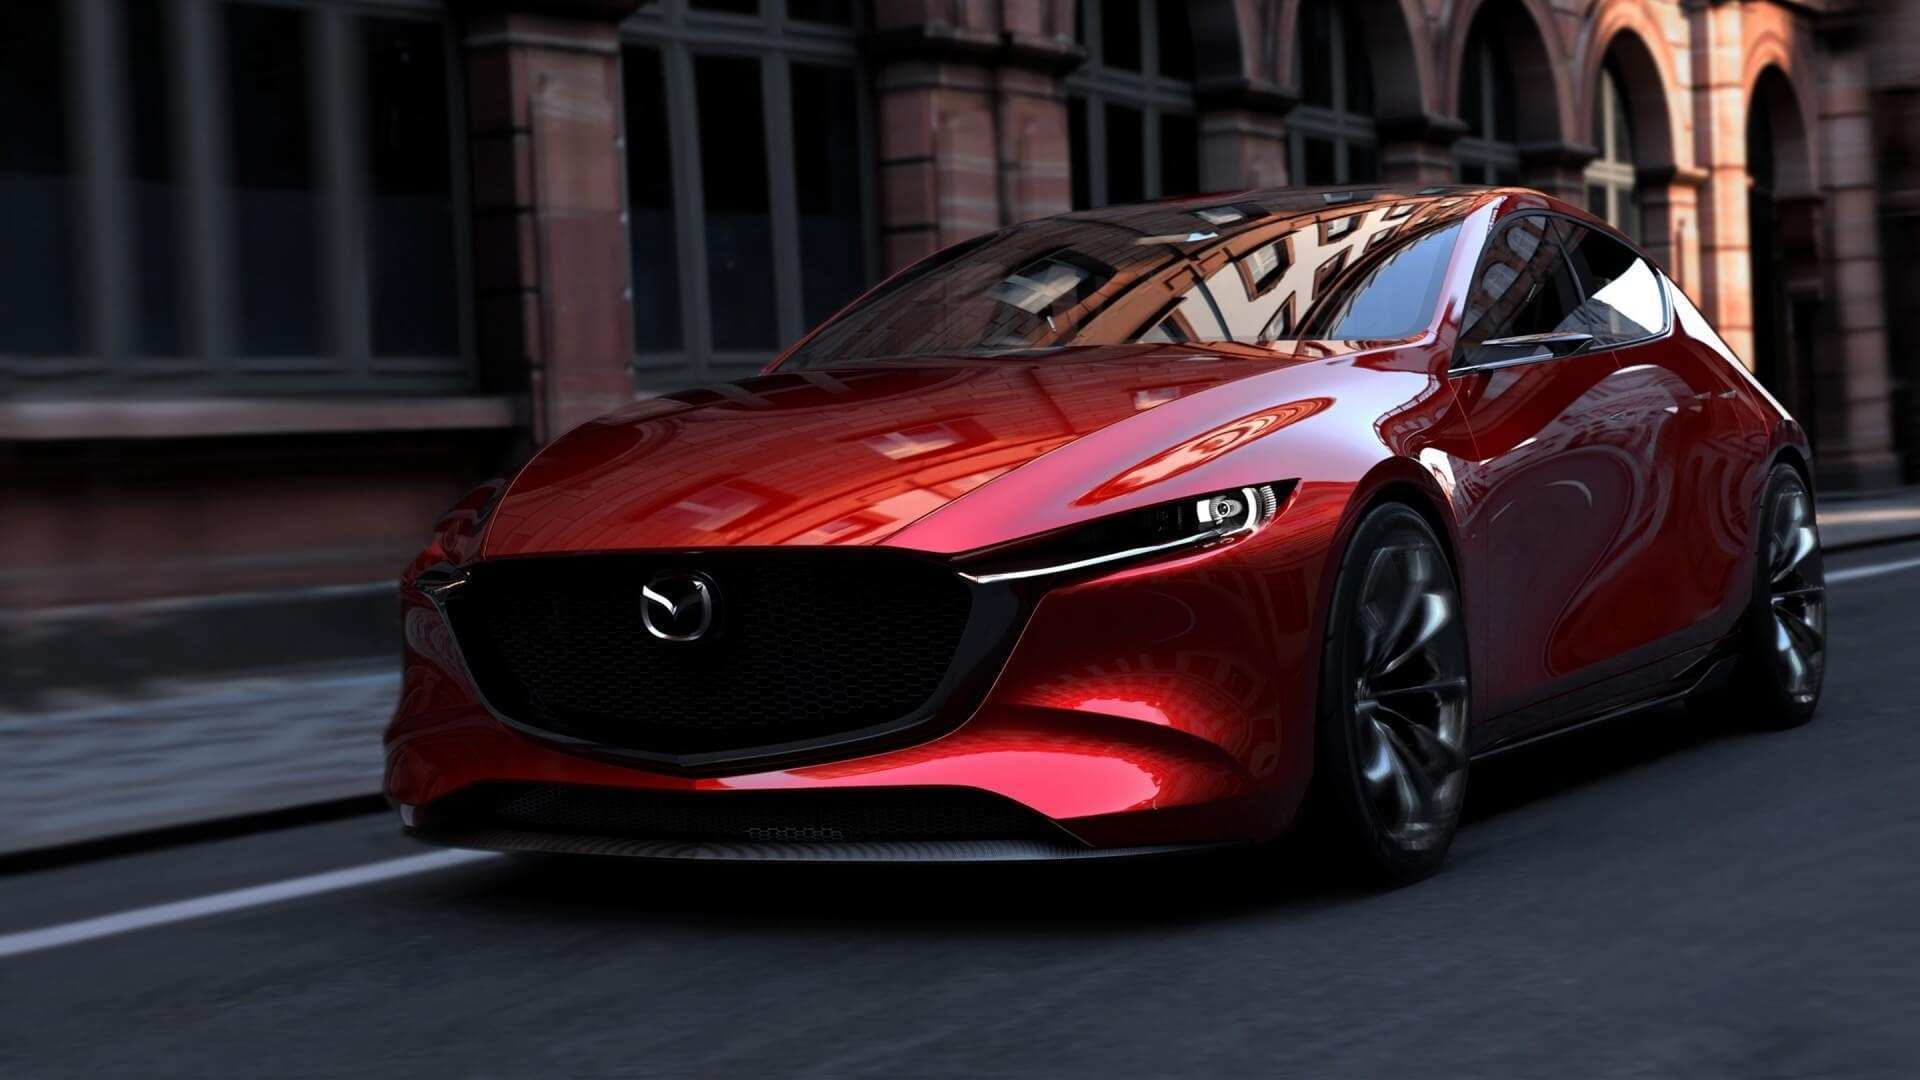 90 All New 2020 Mazda MX 5 Images by 2020 Mazda MX 5